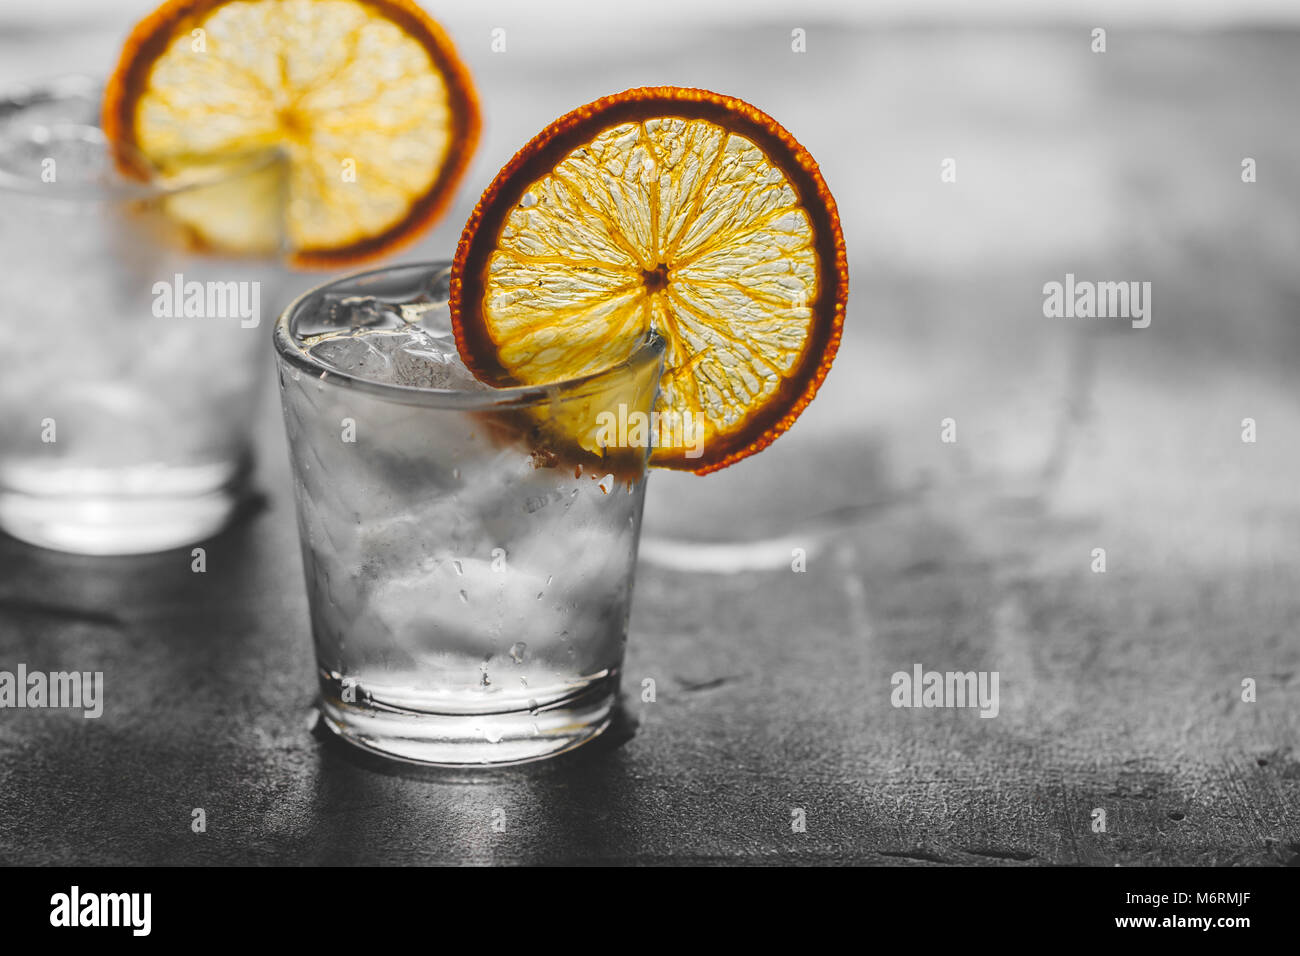 Two shots of tequila with ice and a dried orange slice on a grey background. - Stock Image